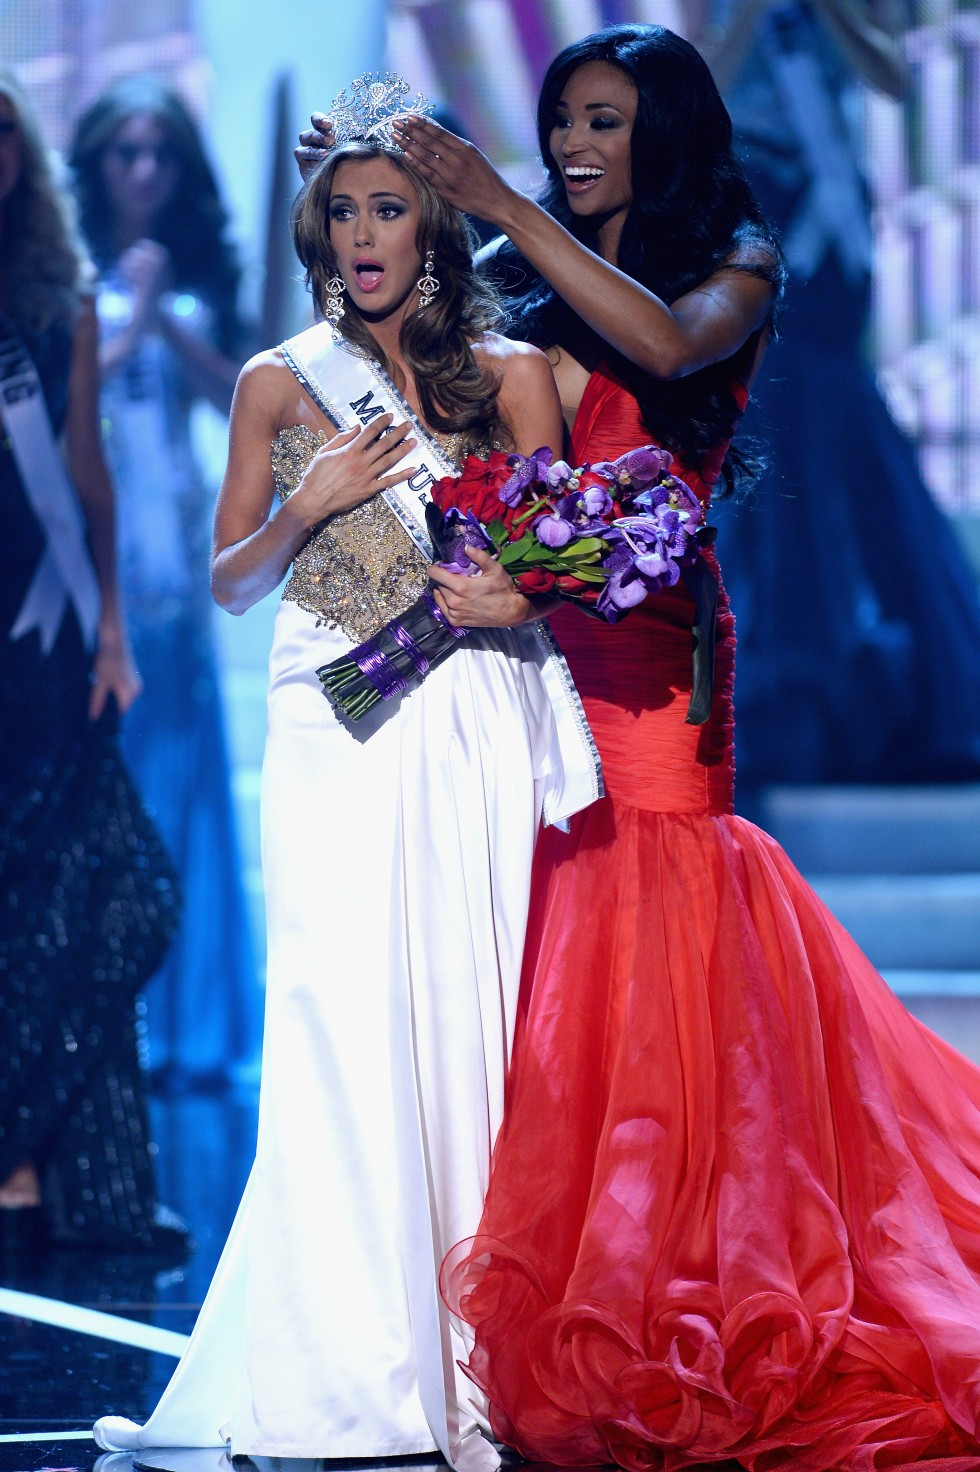 LAS VEGAS, NV - JUNE 16:  Miss USA 2012 Nana Meriwether crowns Miss Connecticut USA Erin Brady the new Miss USA during the 2013 Miss USA pageant at PH Live at Planet Hollywood Resort & Casino on June 16, 2013 in Las Vegas, Nevada.  (